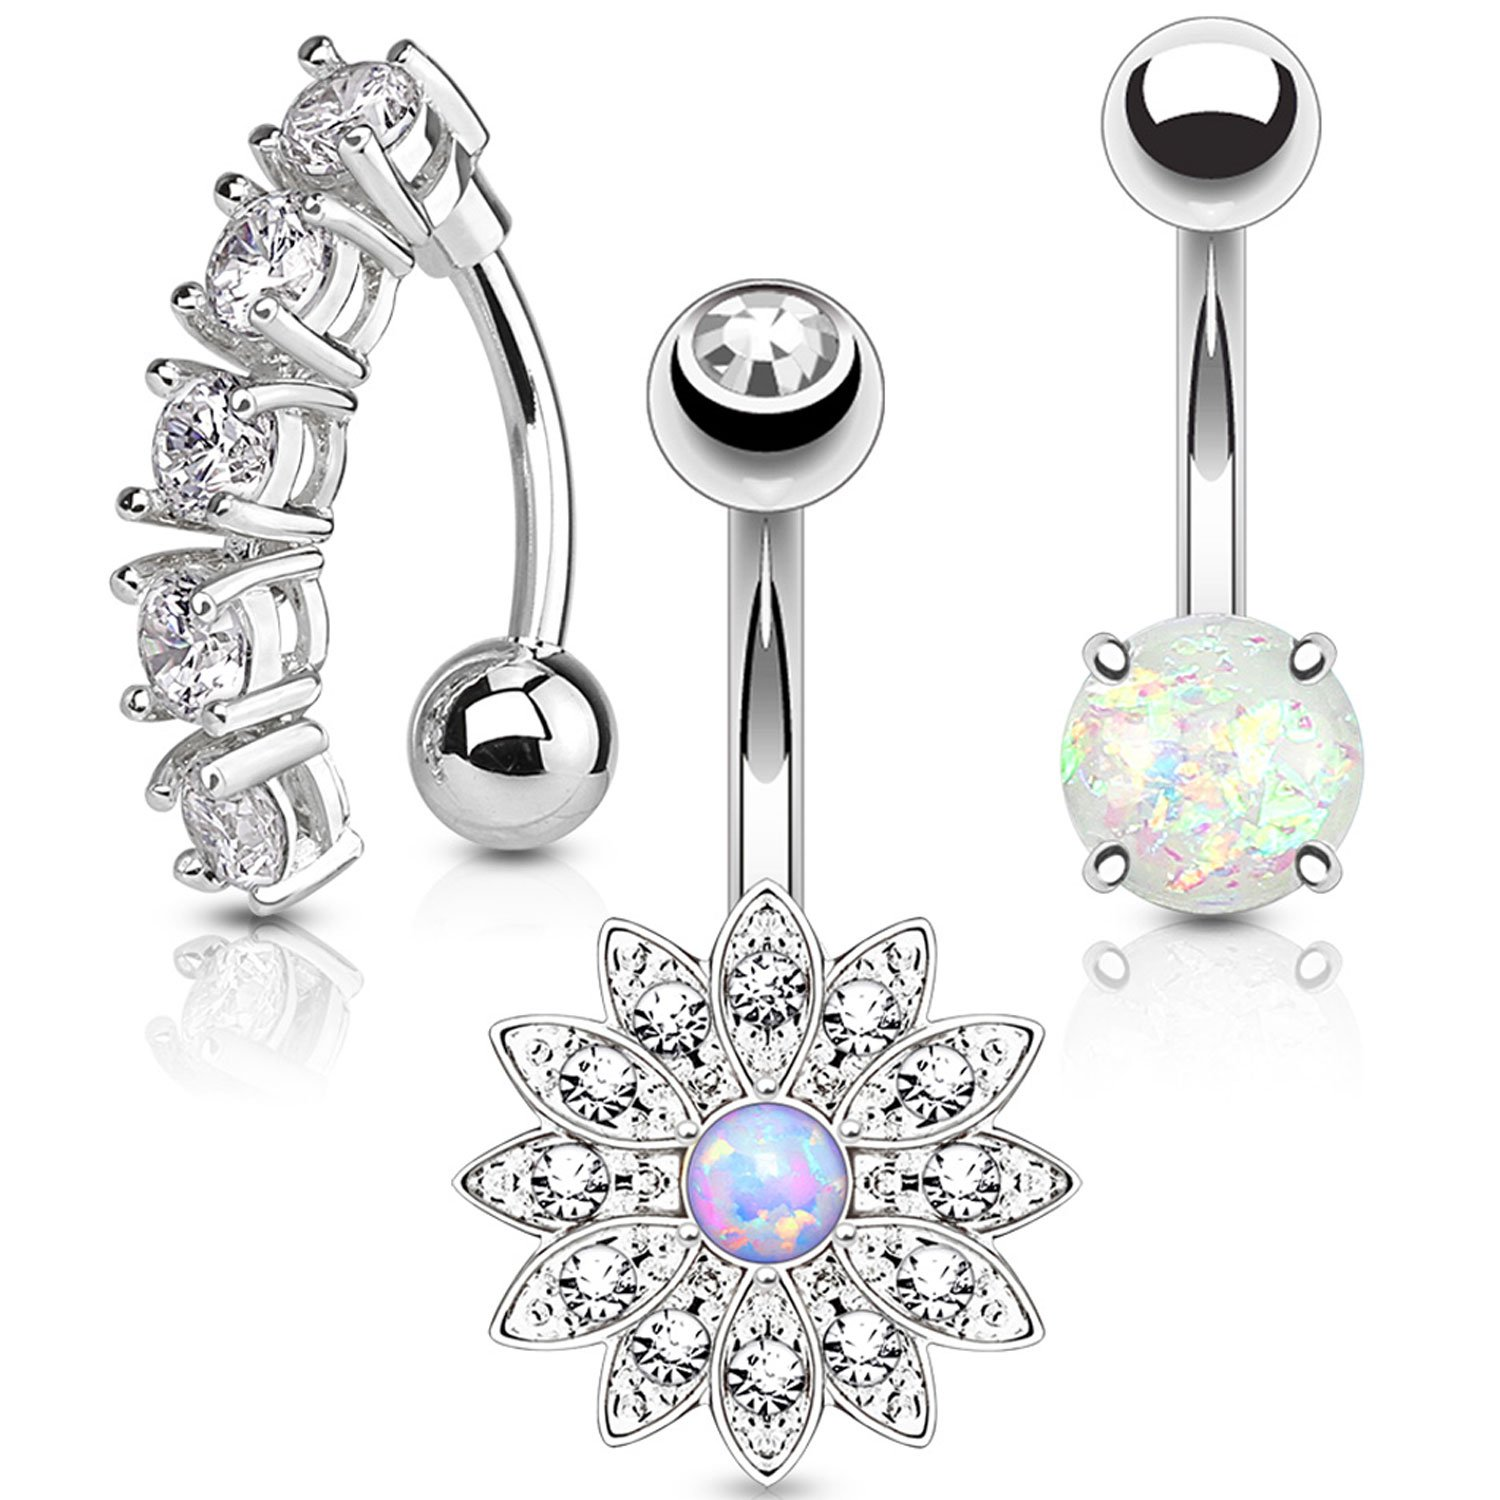 BodyJ4You 3PC Belly Button Rings Set 14G Crystal Flower Silvertone Stainless Steel Curved Navel Barbell